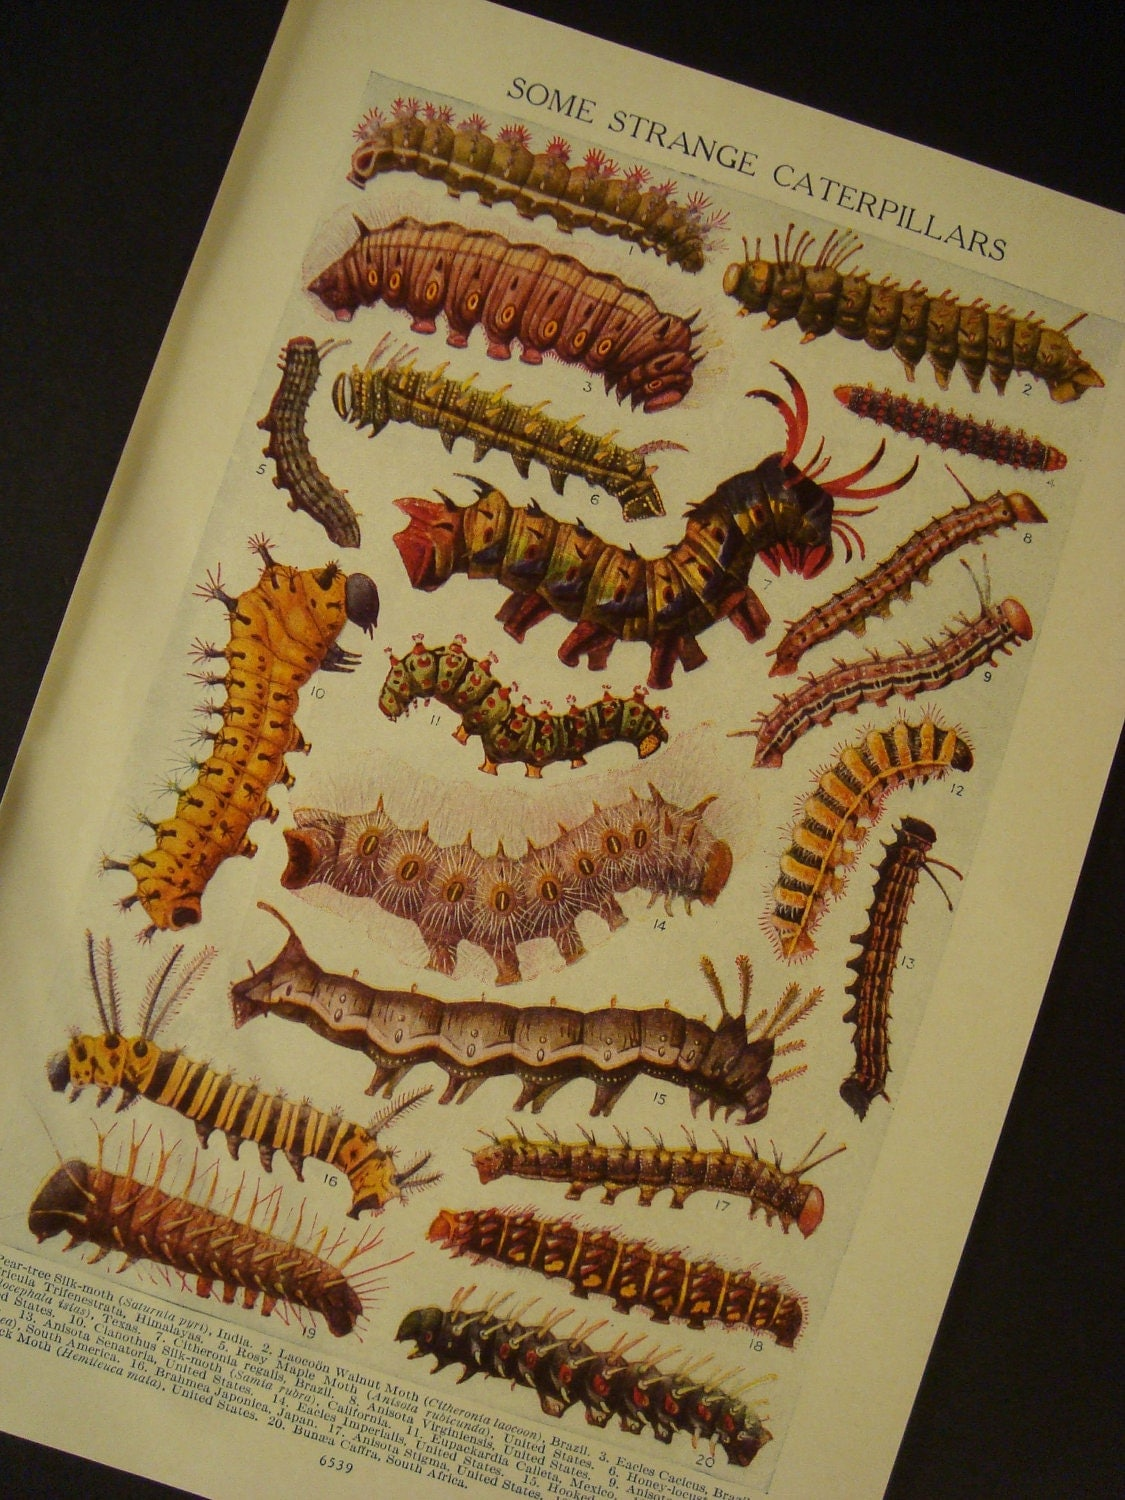 Strange Caterpillars Double Sided Antique Original Insect Print Number 589 - iowajewel